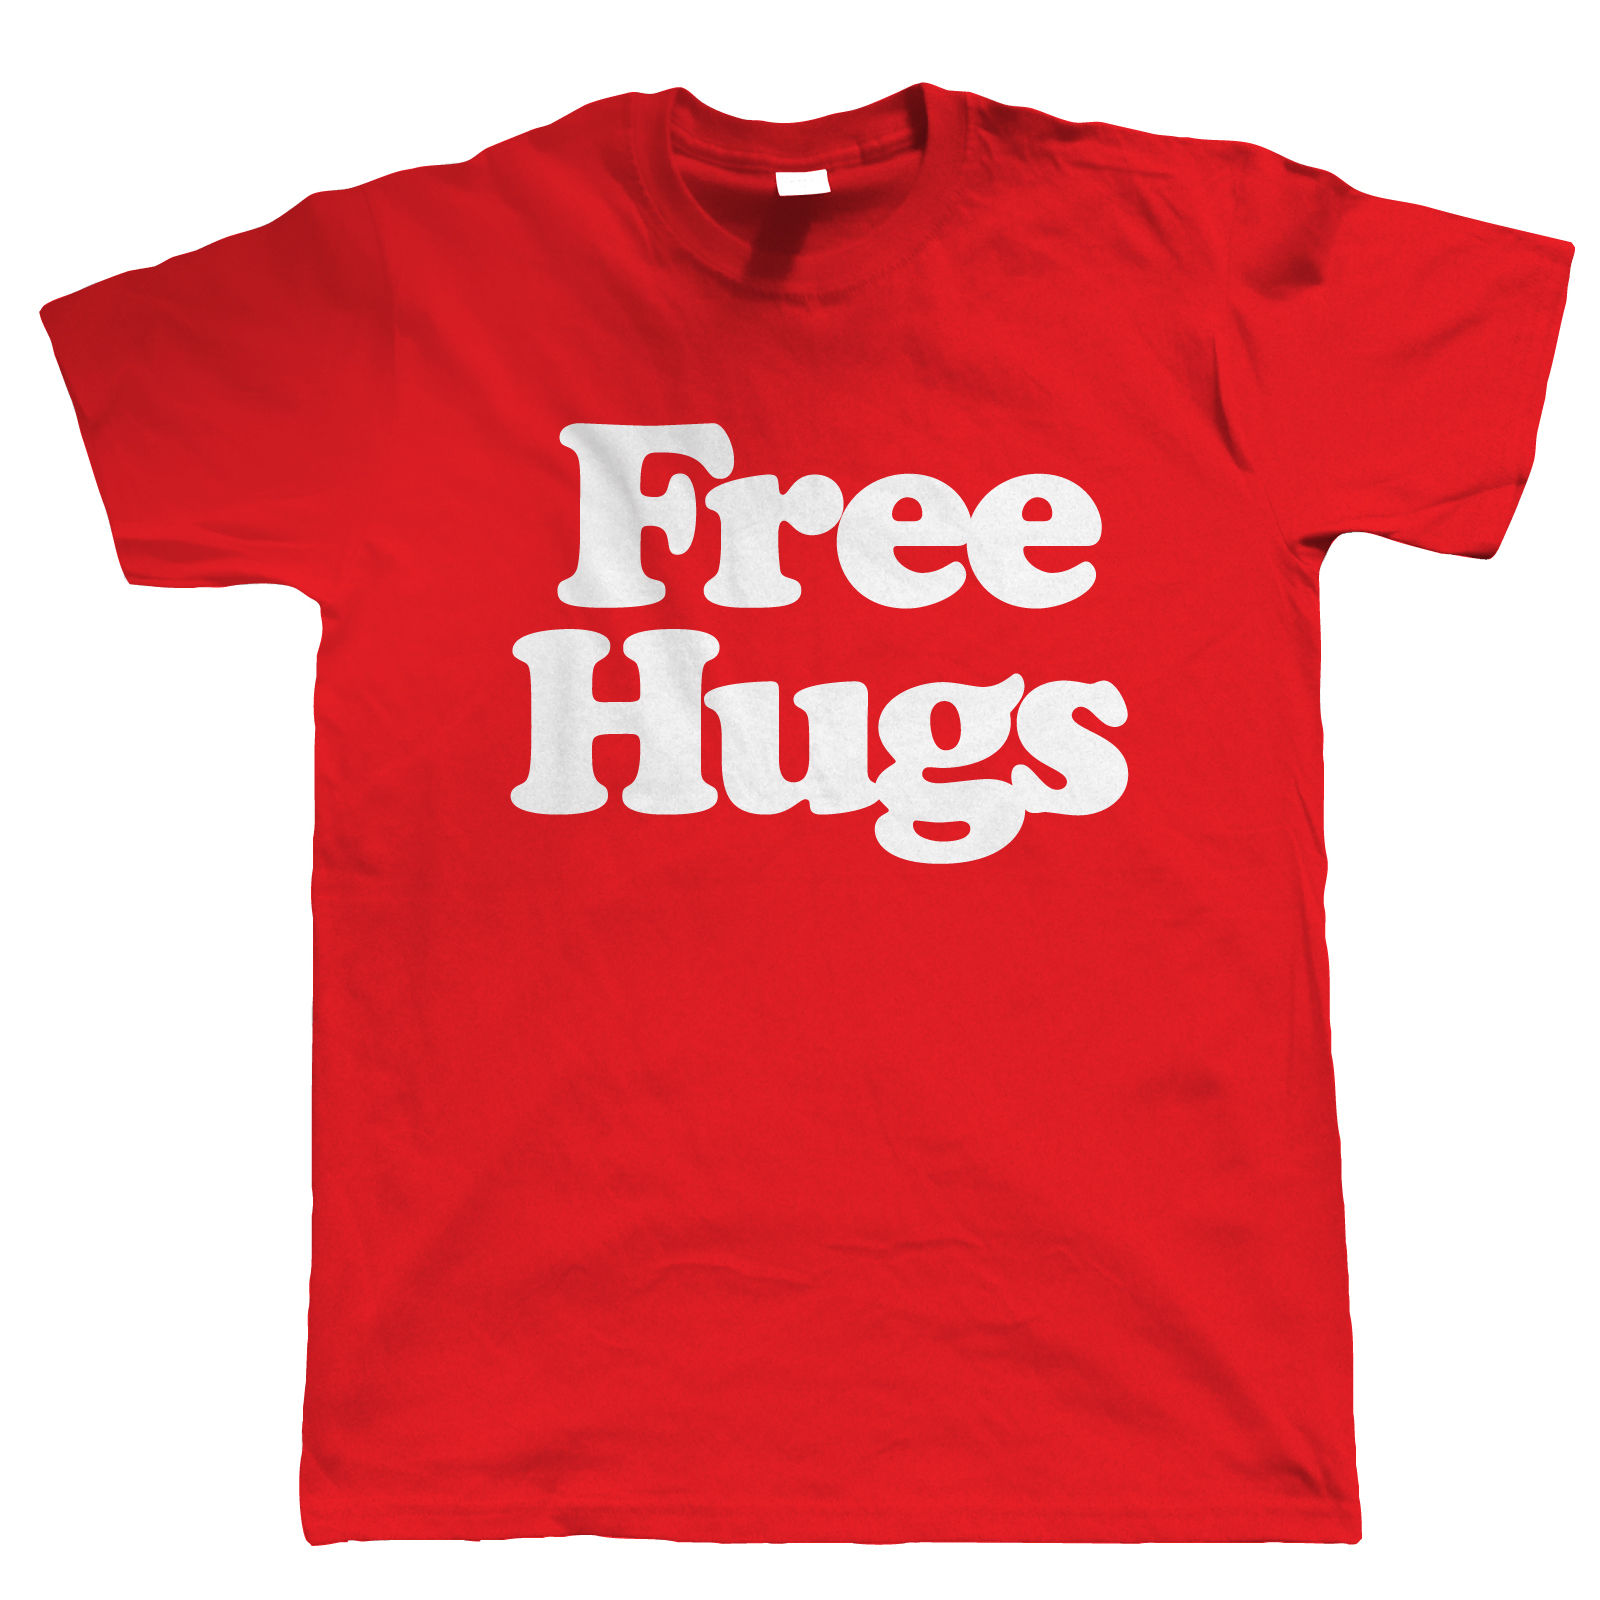 Us 13 04 13 Off Free Hugs Uomo Slogan Divertente T Shirt Compleanno Per Lui Dad Festa Del Papa Short Sleeved Print Letters T Shirt In T Shirts From